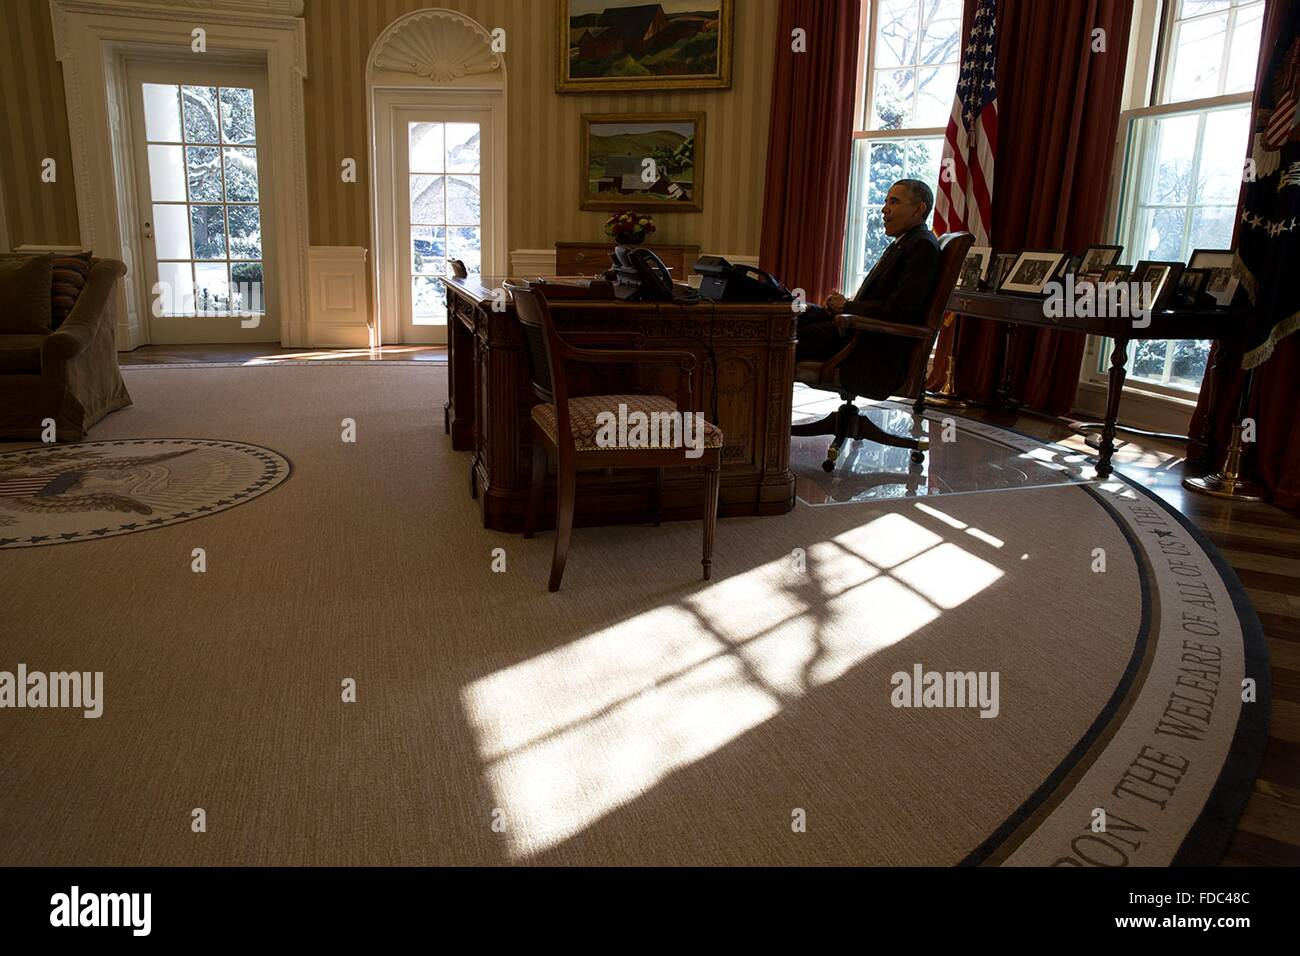 US President Barack Obama sits at the Resolute Desk as sun